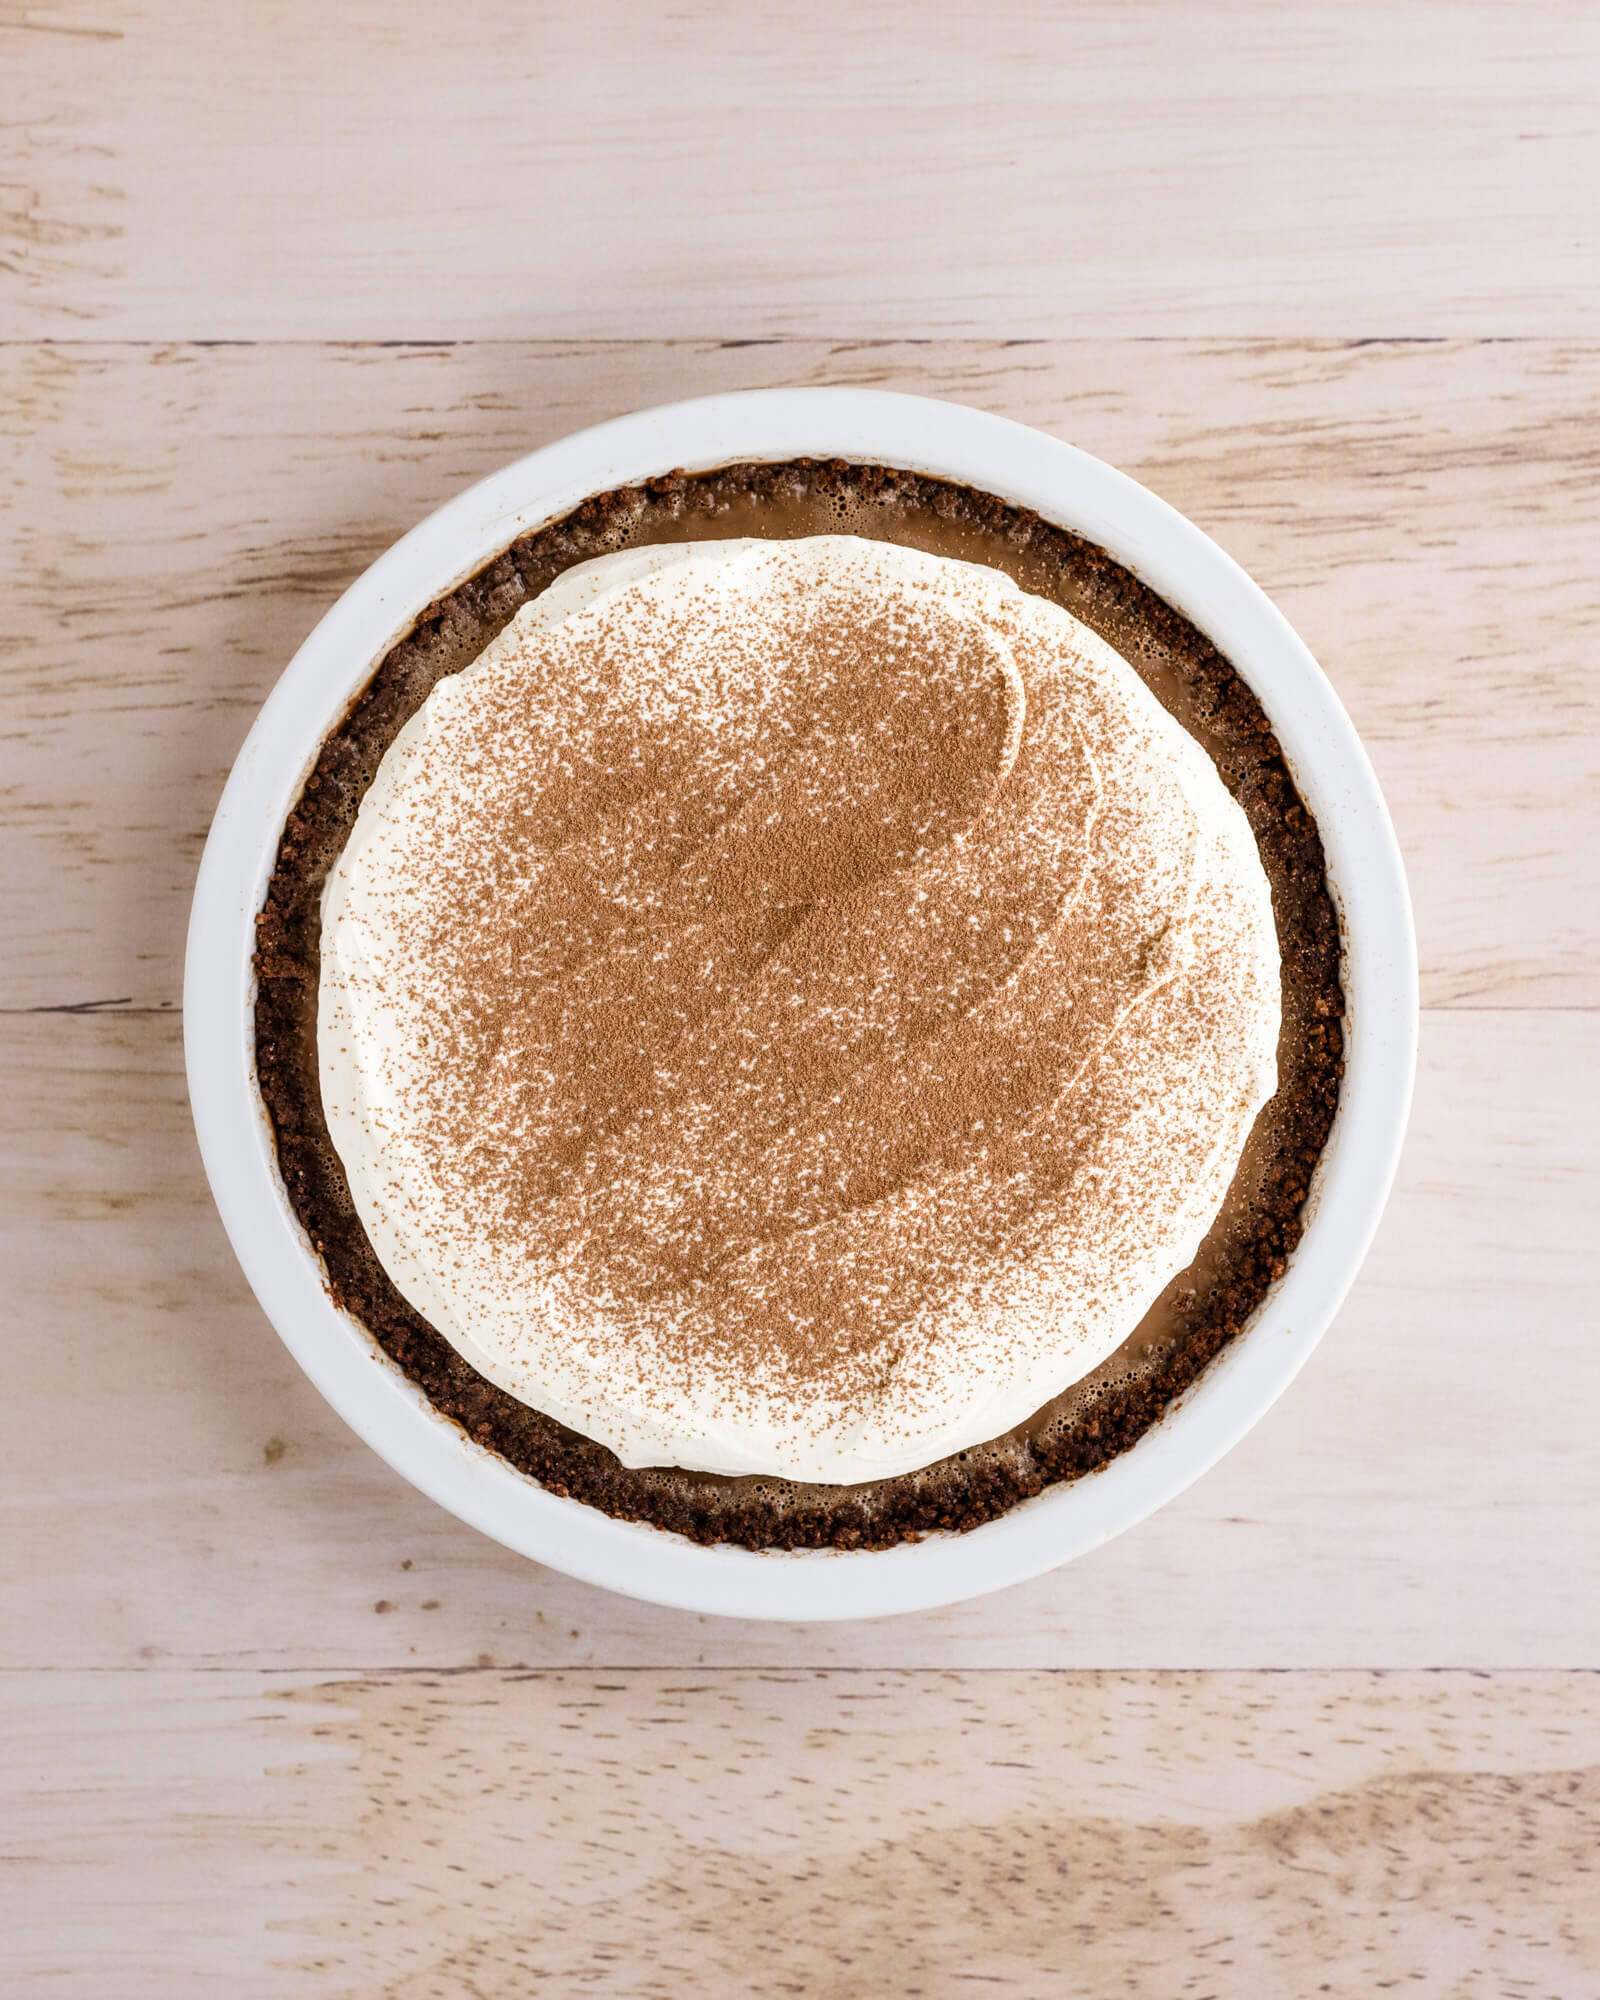 Full sugar free chocolate pie with keto whipped cream topping shot from overhead. Dusted with cocoa powder.